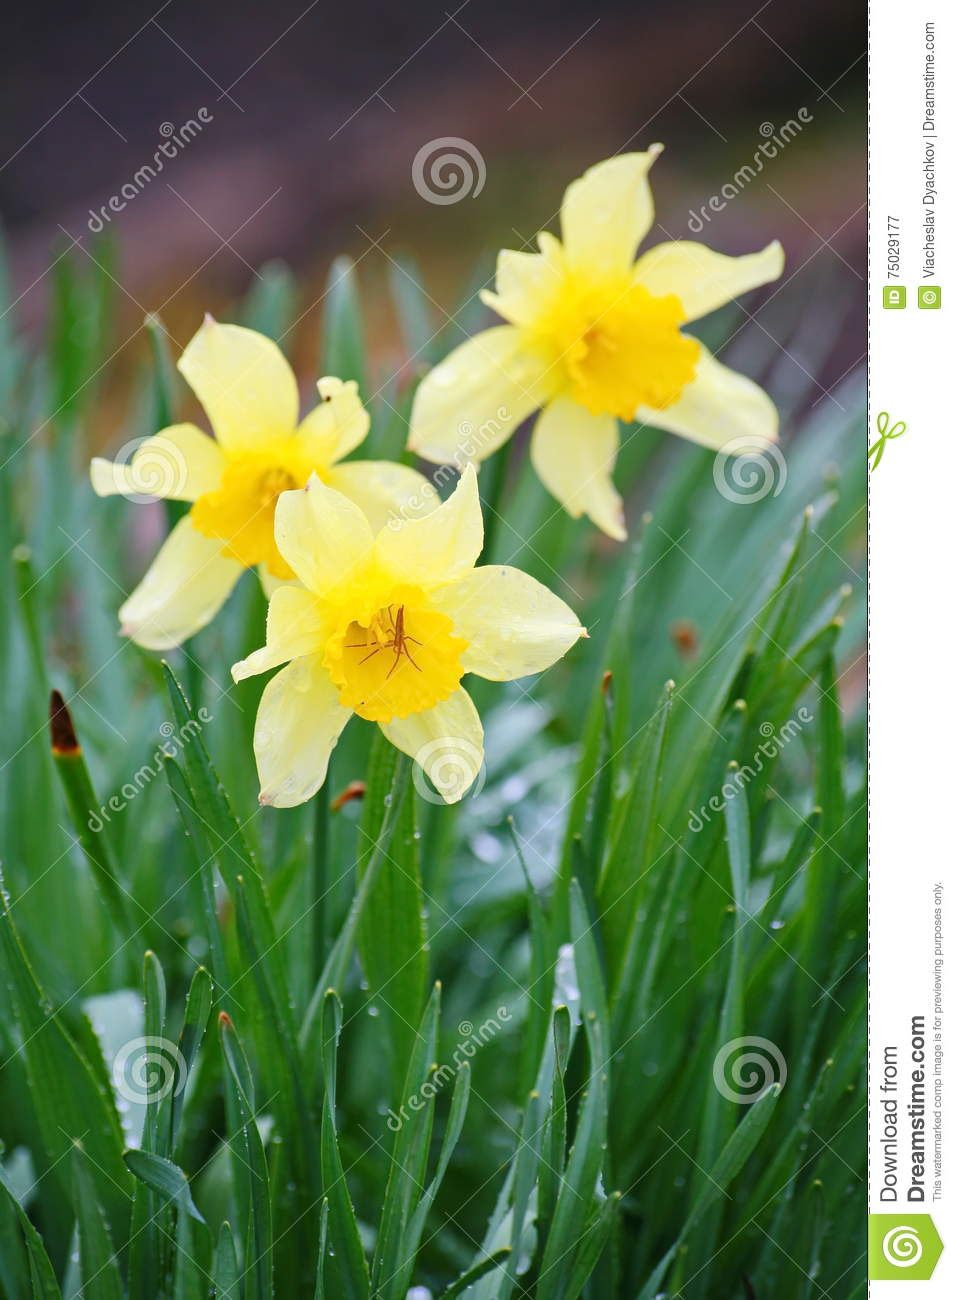 Narcissus flowers for chinese new year white daffodil in the garden download narcissus flowers for chinese new year white daffodil in the garden stock image mightylinksfo